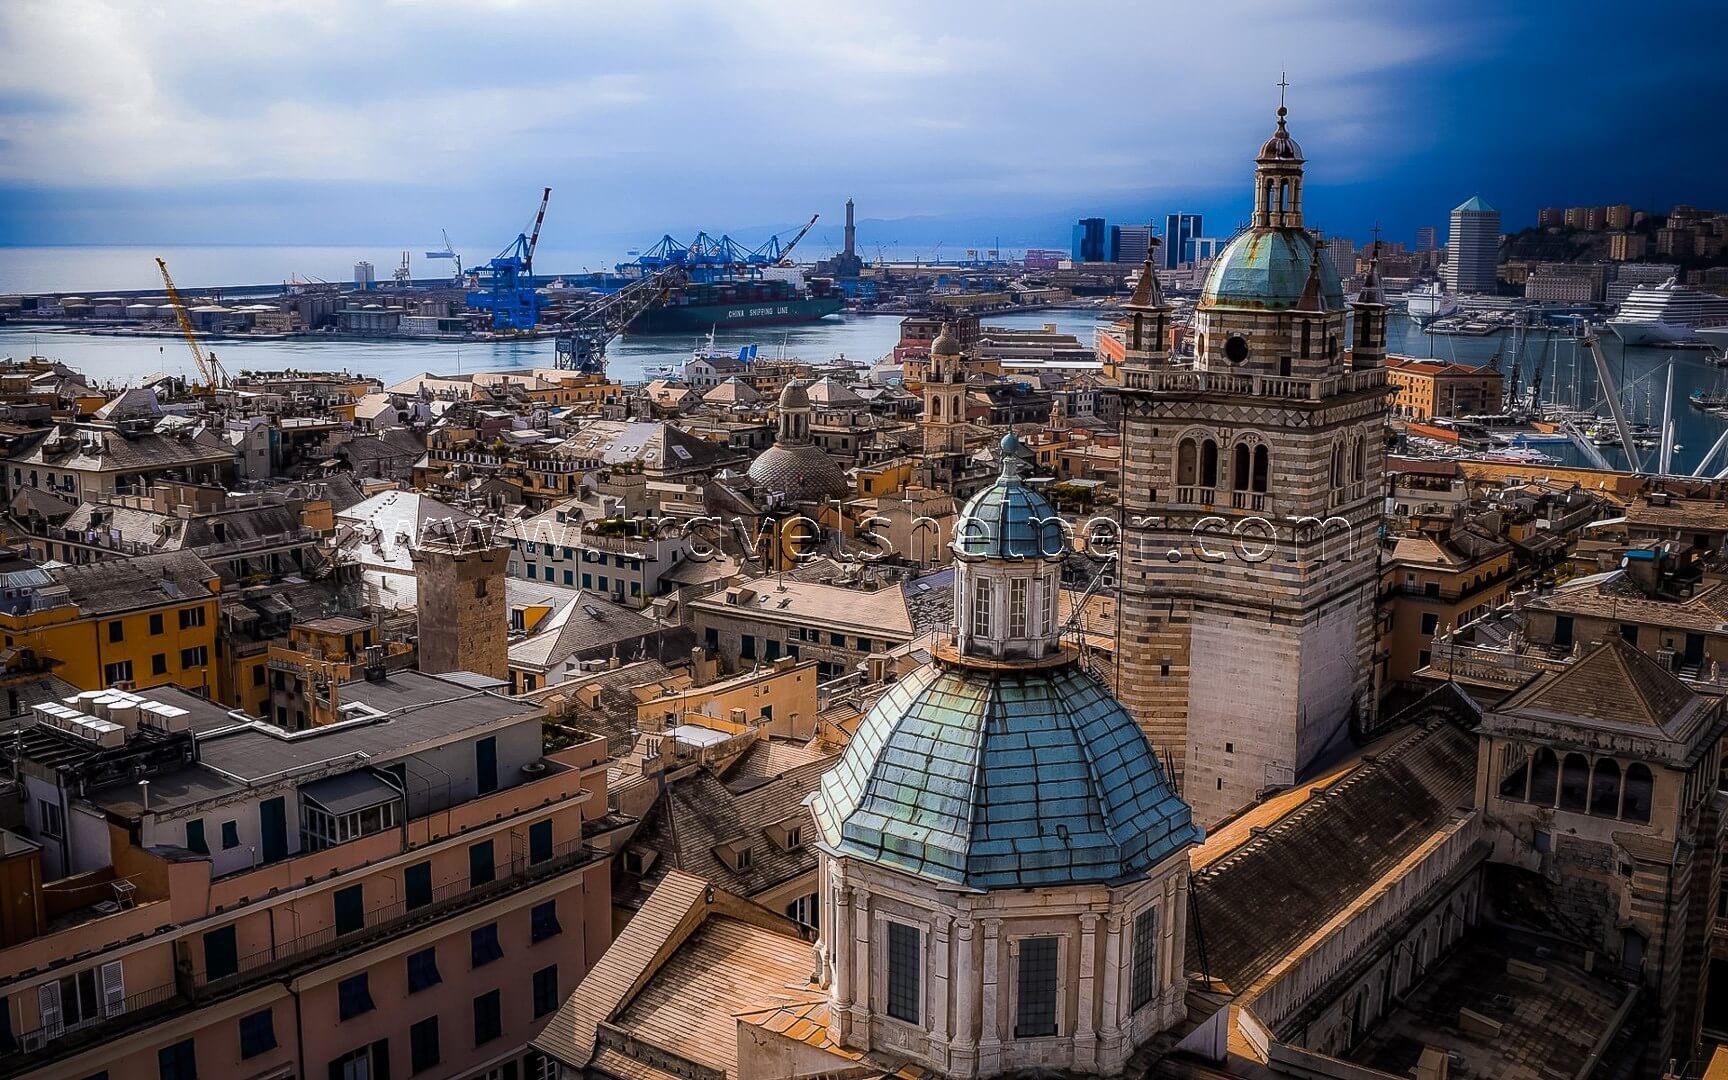 Genoa, Italy - 10 WONDERFUL CITIES IN EUROPE THAT TOURISTS OVERLOOK